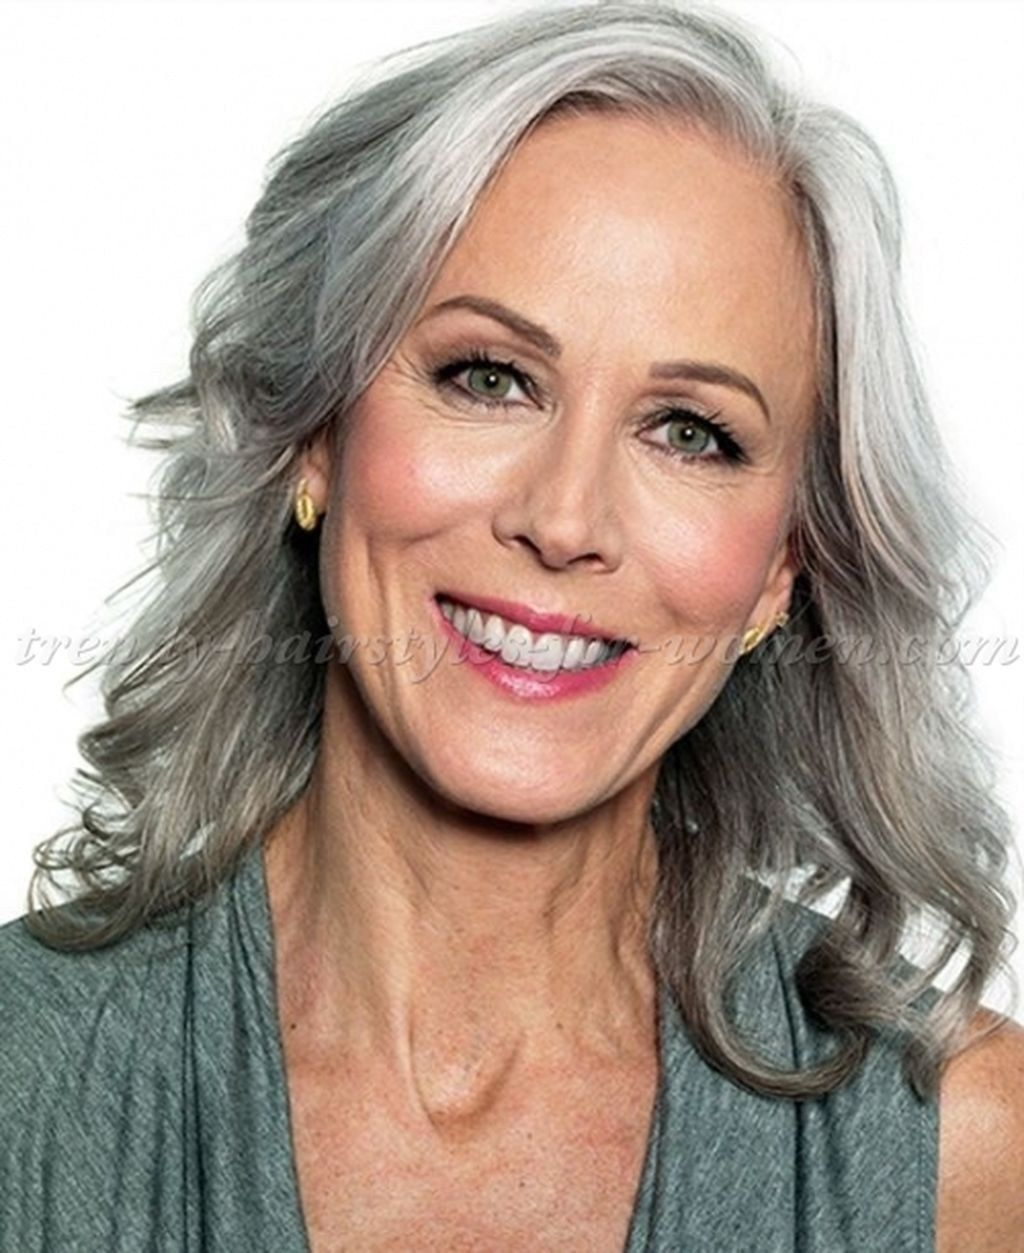 Long Grey Hairstyles Entrancing Stunning Long Gray Hairstyles Ideas For Women Over 50 45  Grey